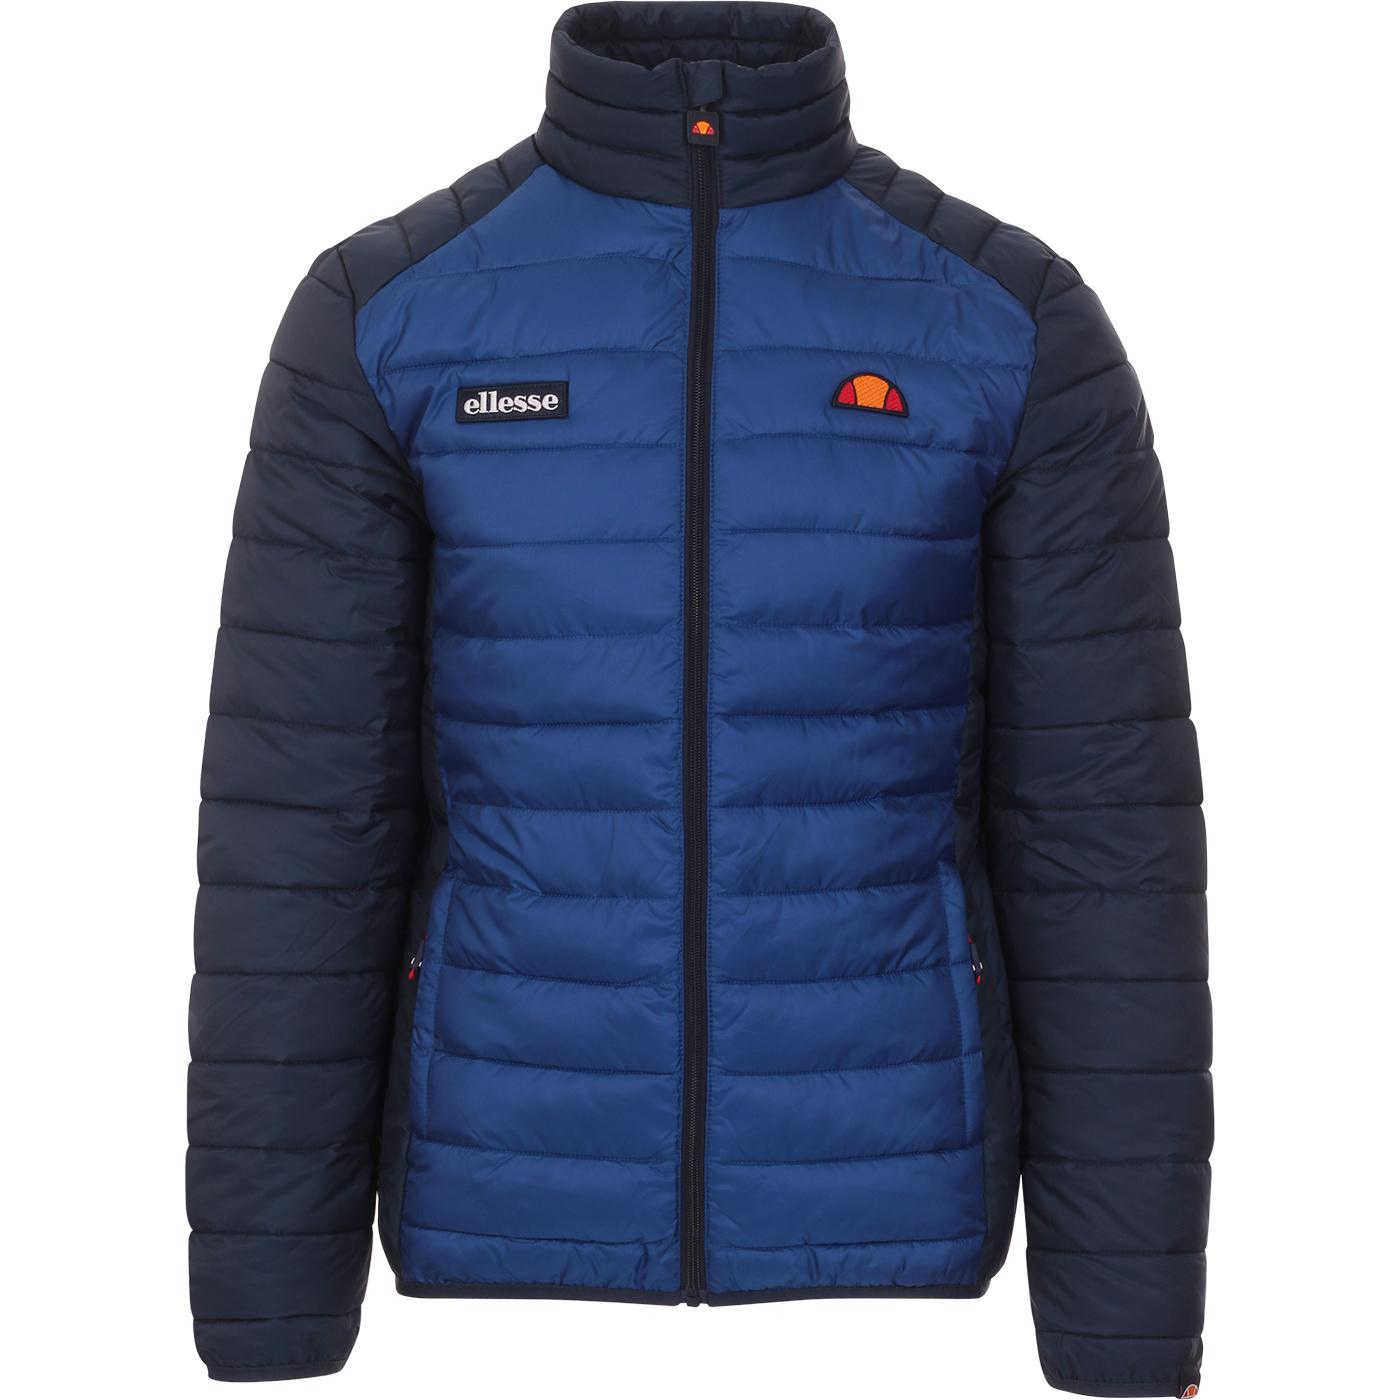 Tartaro ELLESSE Retro Colour Block Quilted Jacket